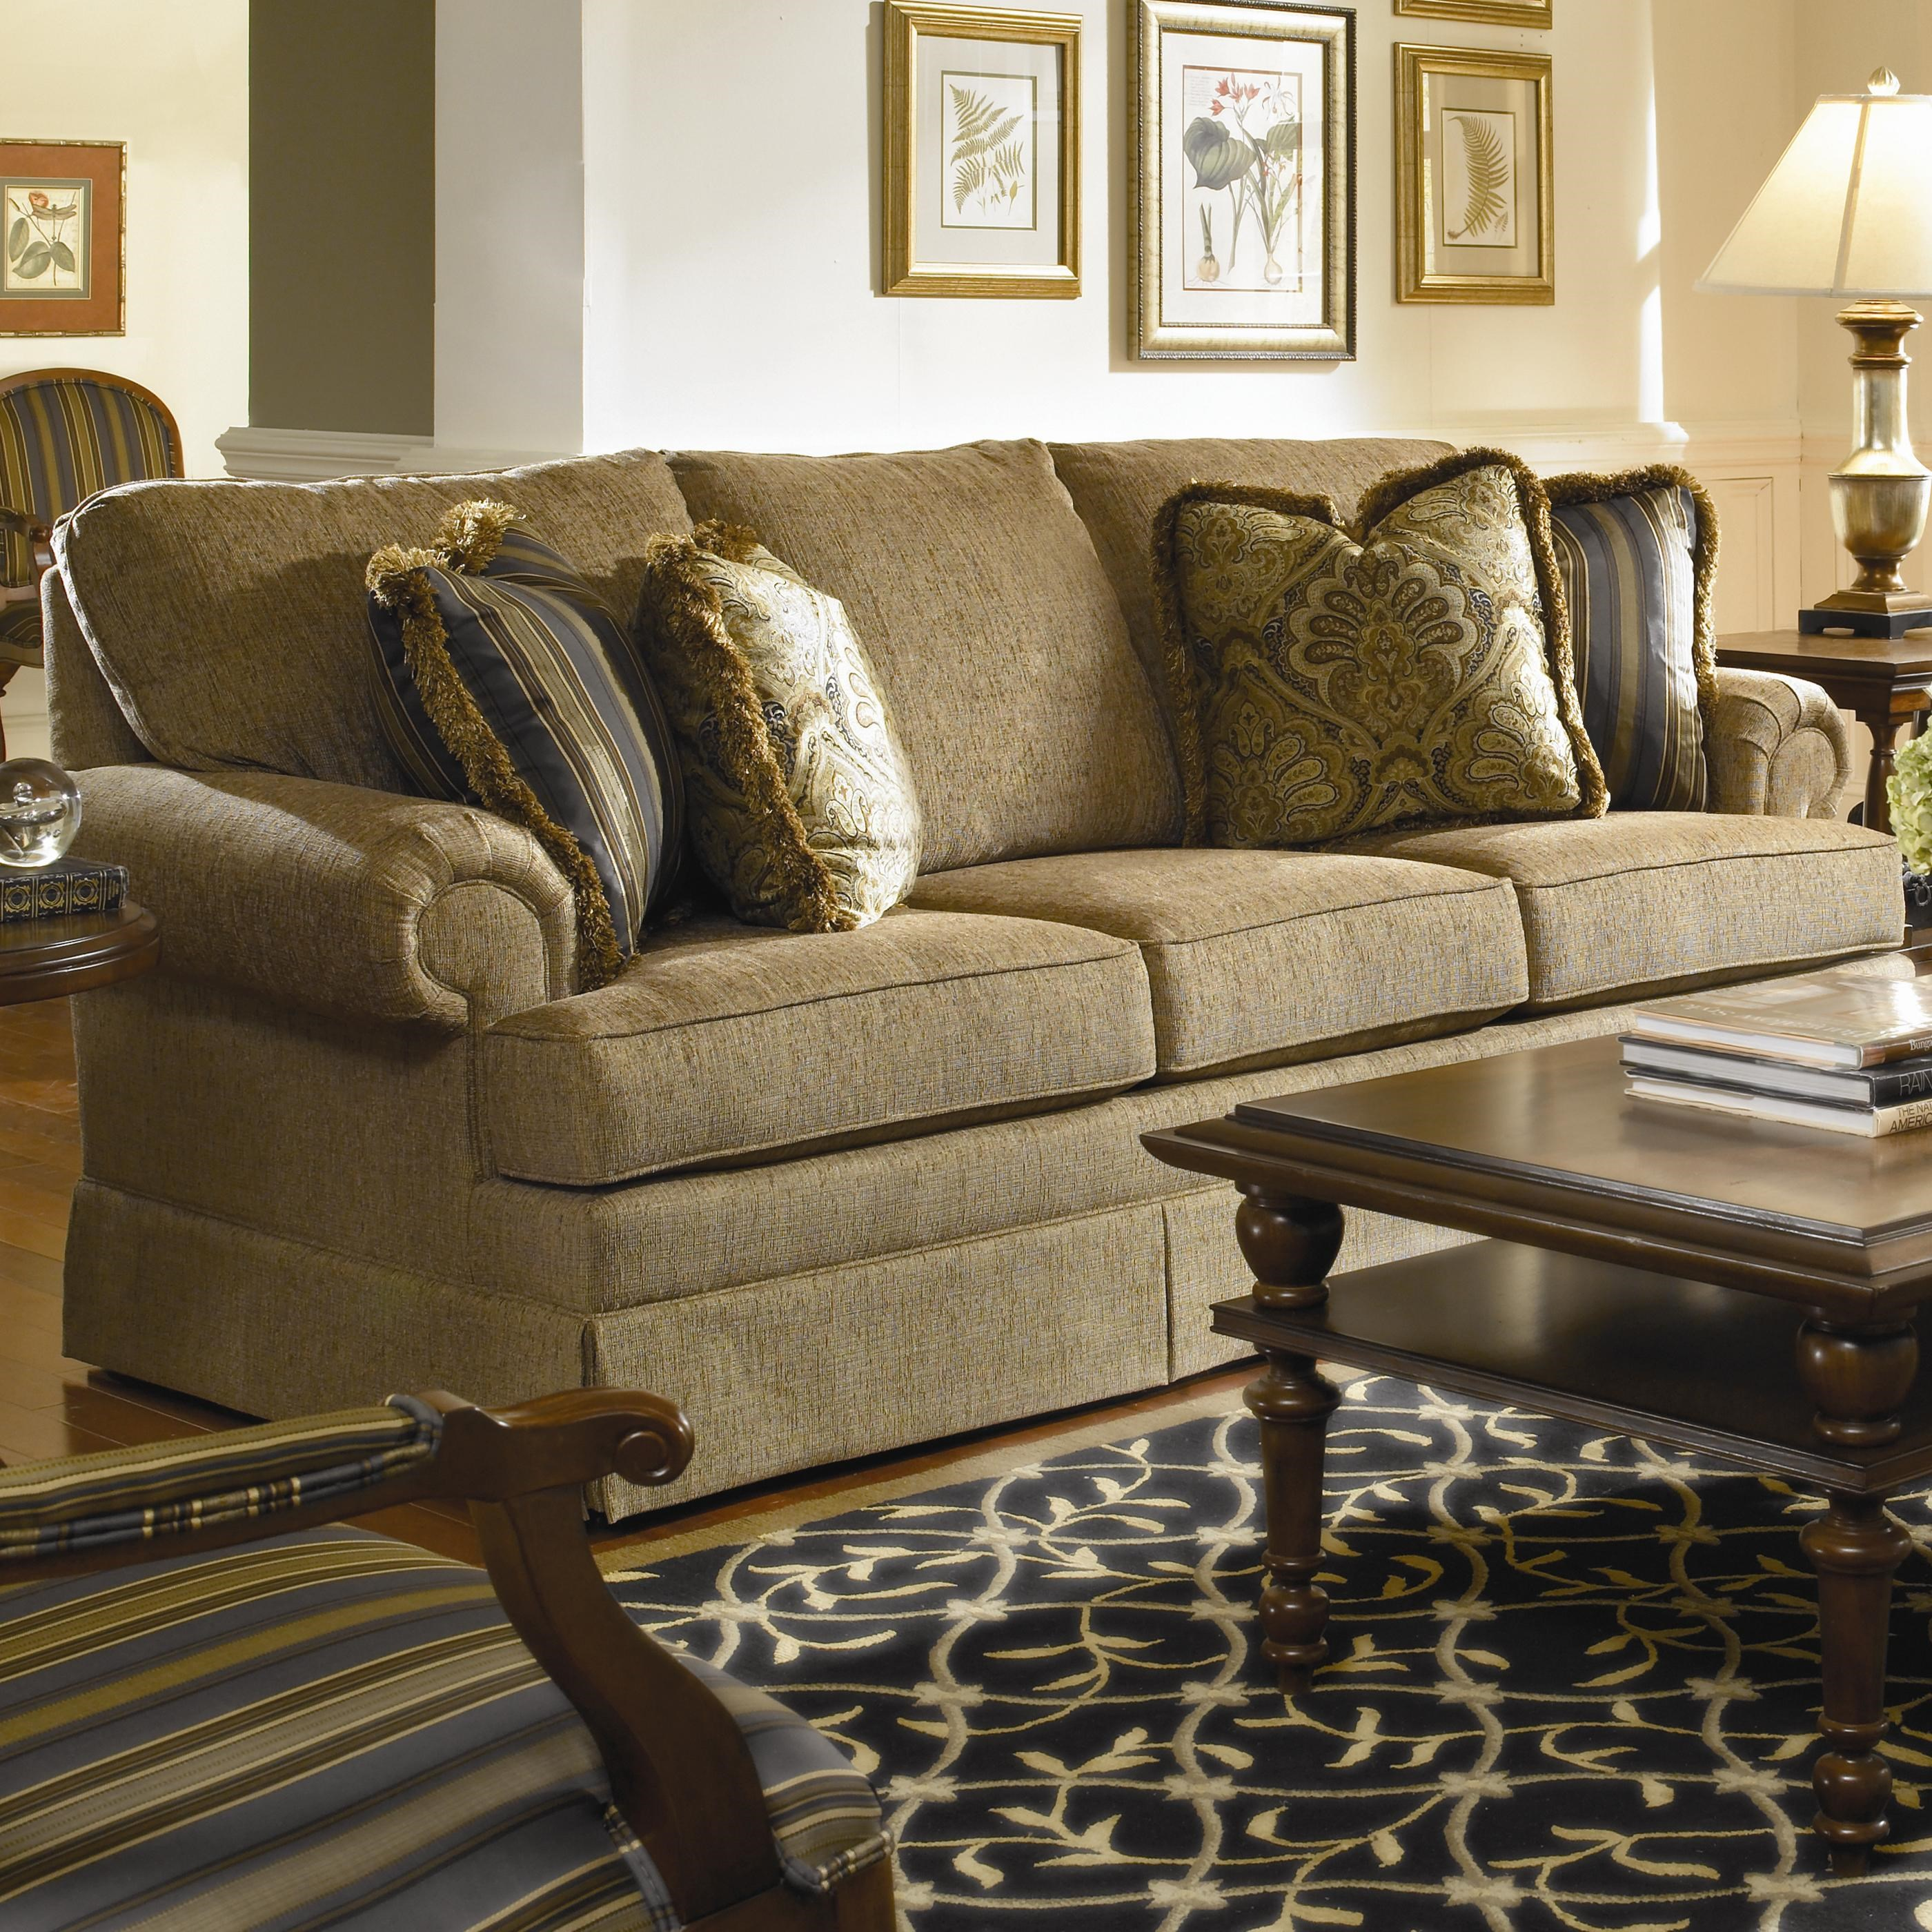 Merveilleux Kincaid Furniture Custom Select UpholsteryCustom 3 Seat Sofa ...